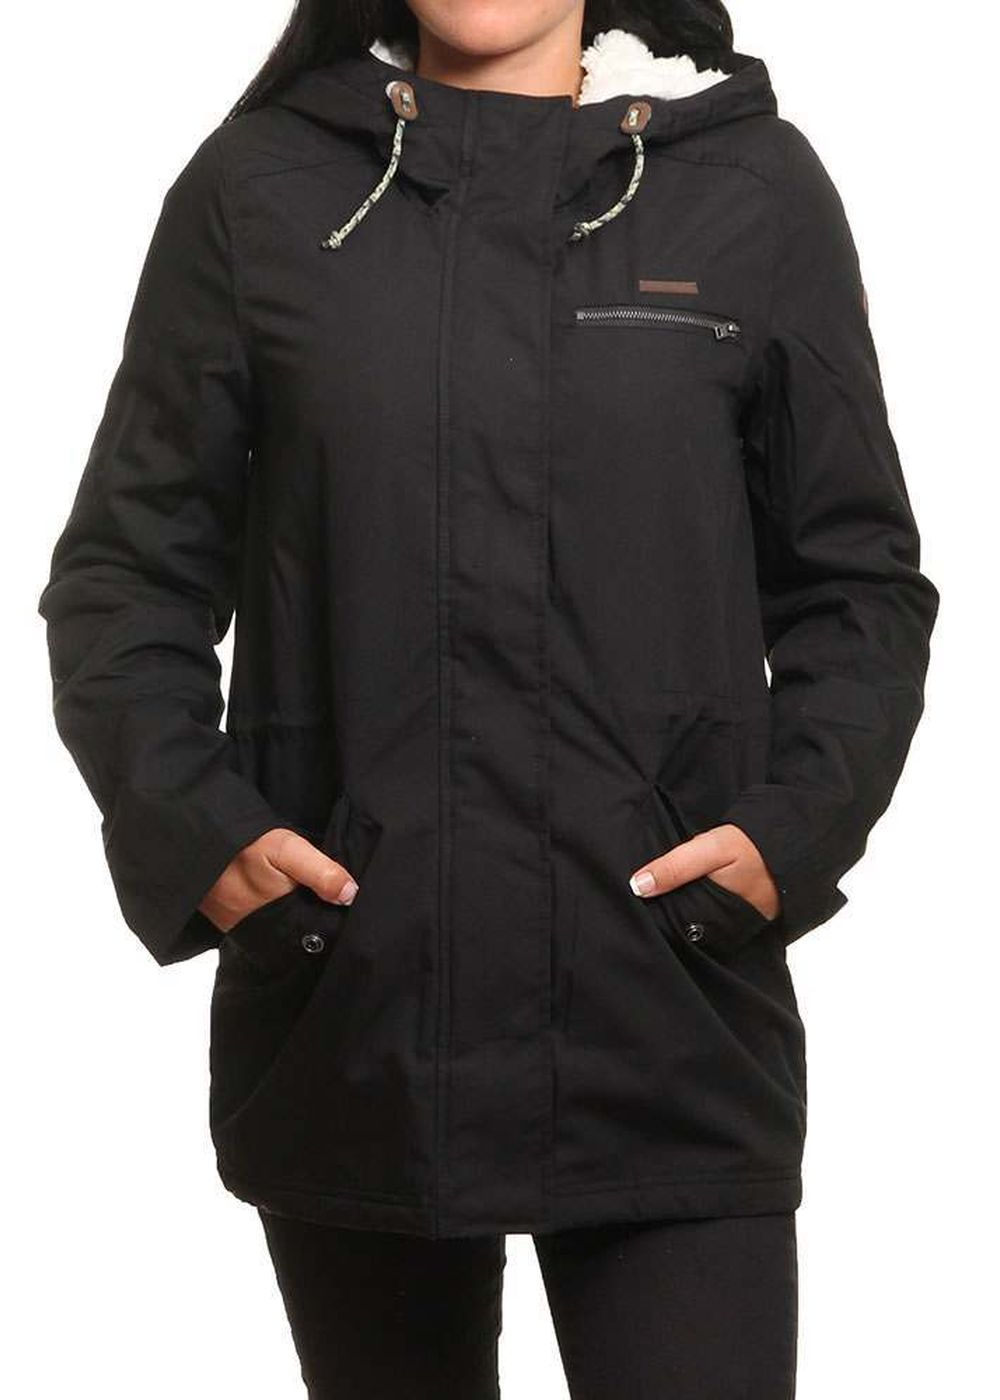 billabong-facil-iti-jacket-off-black